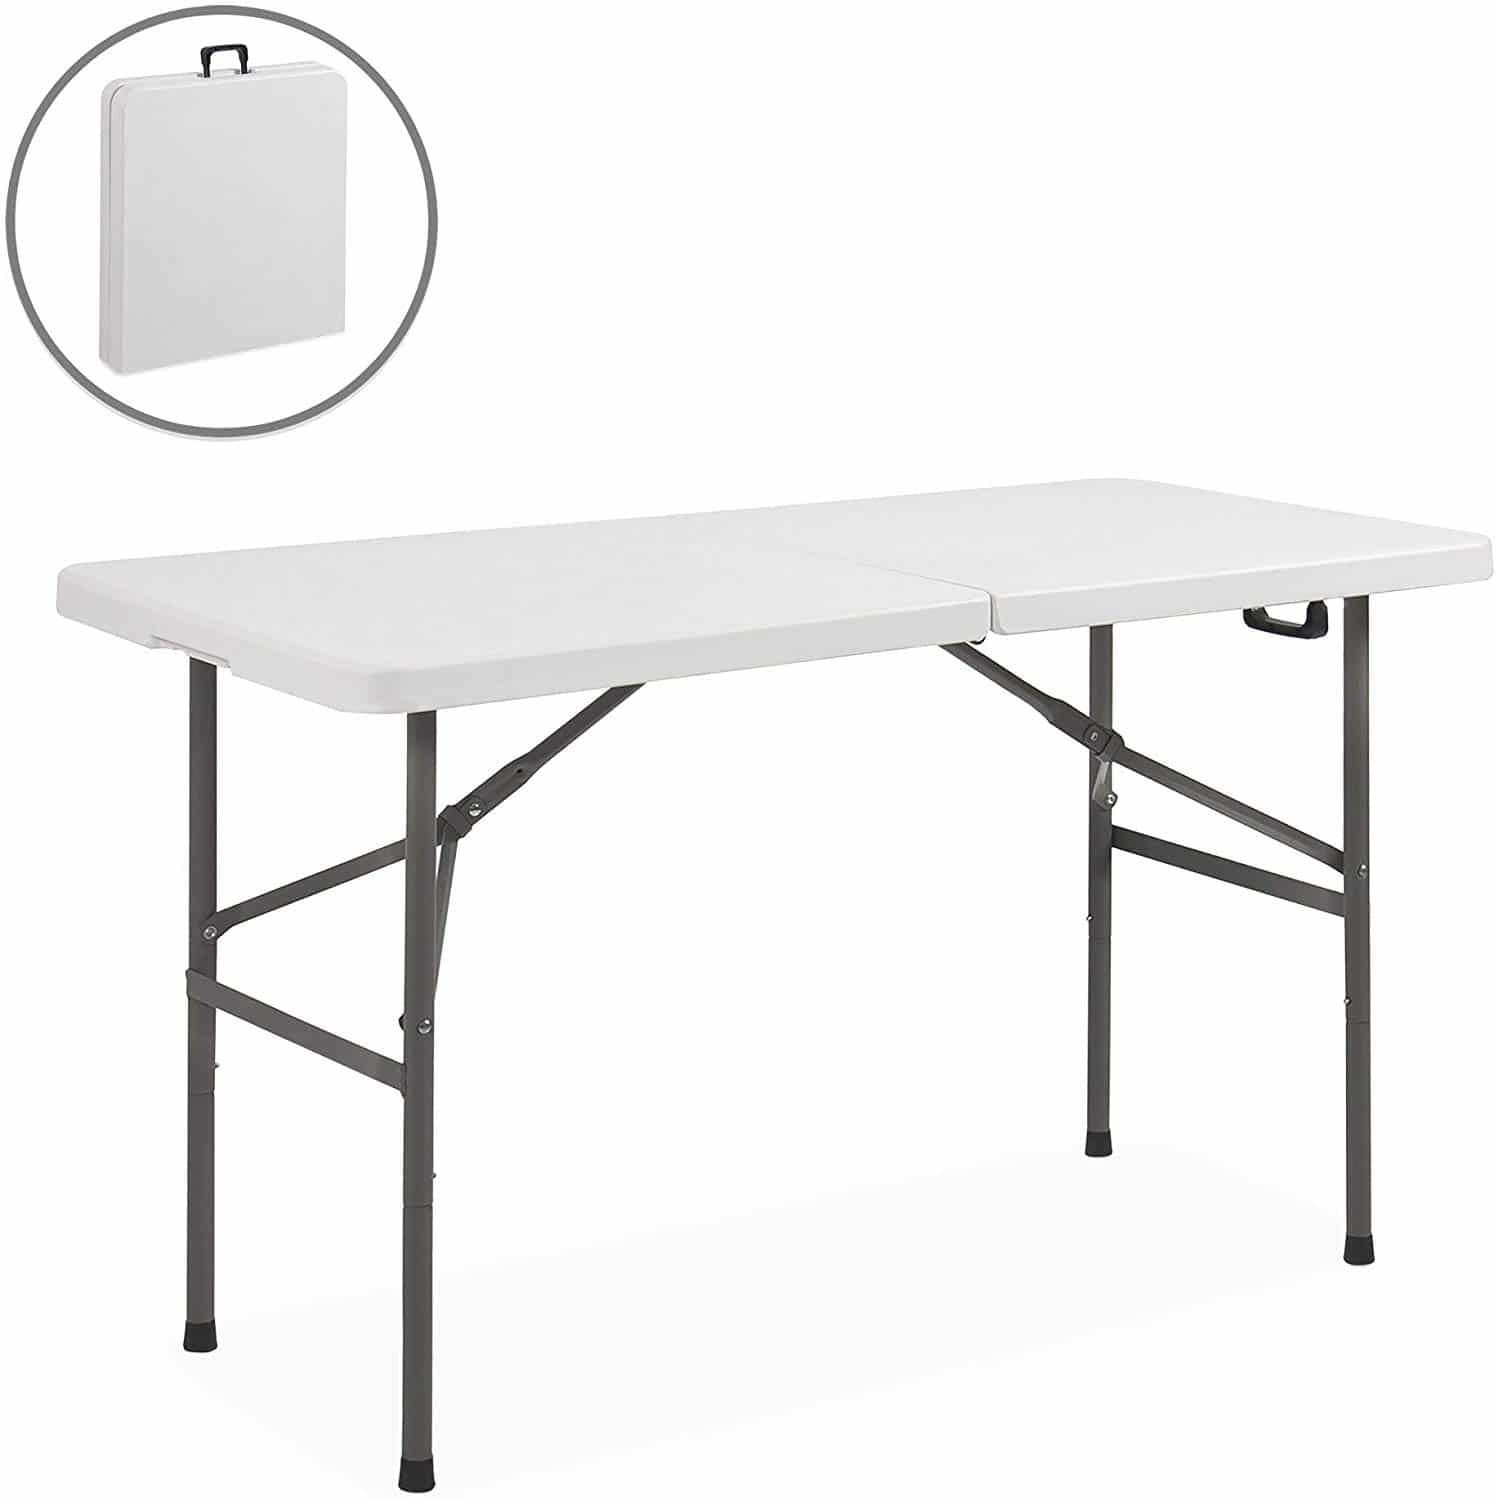 Best Choice Products Portable Utility Table